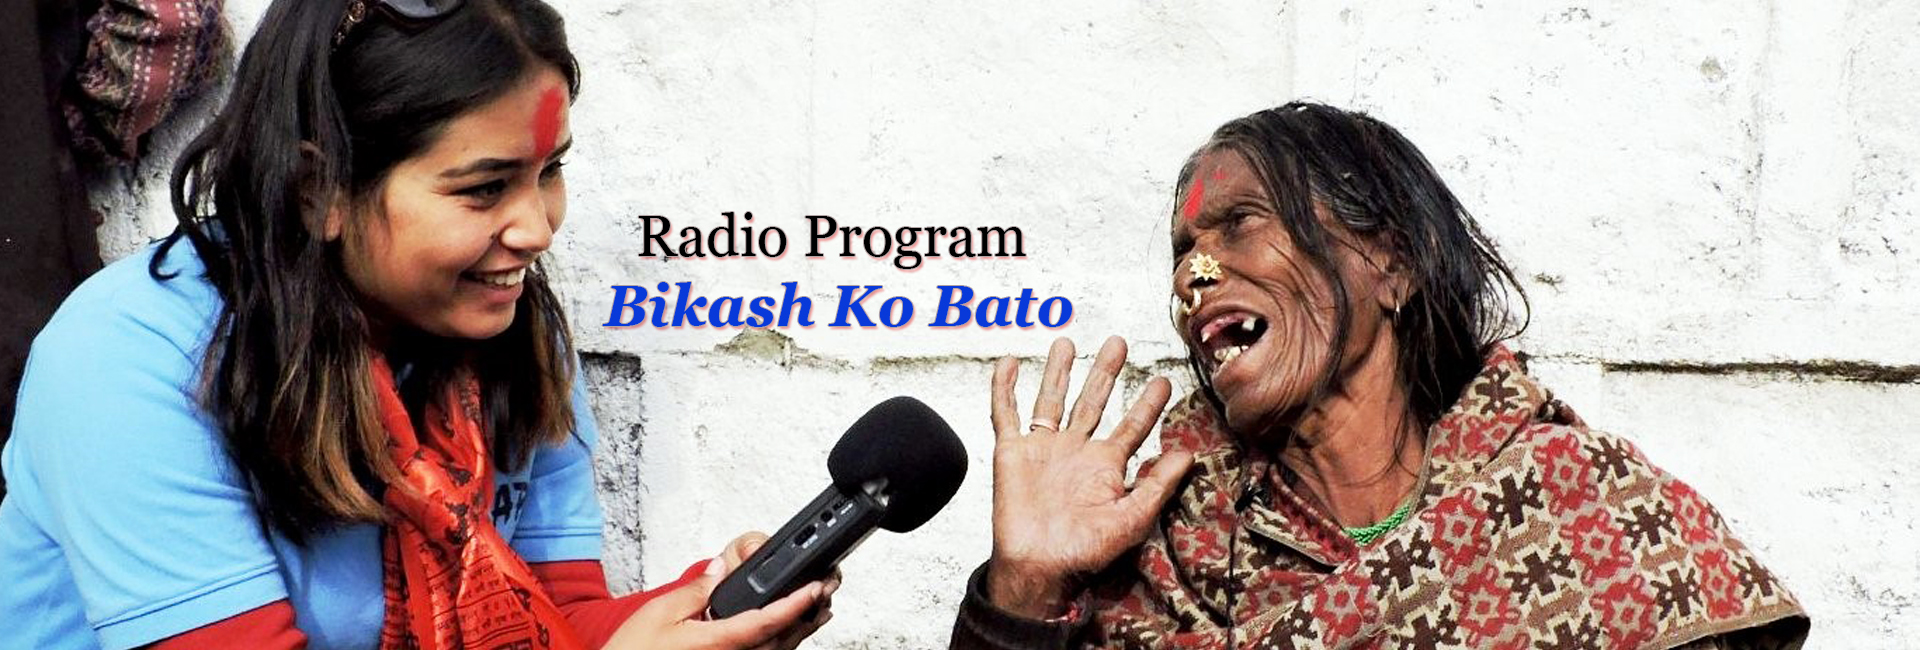 Radio Program Bikash Ko Bato